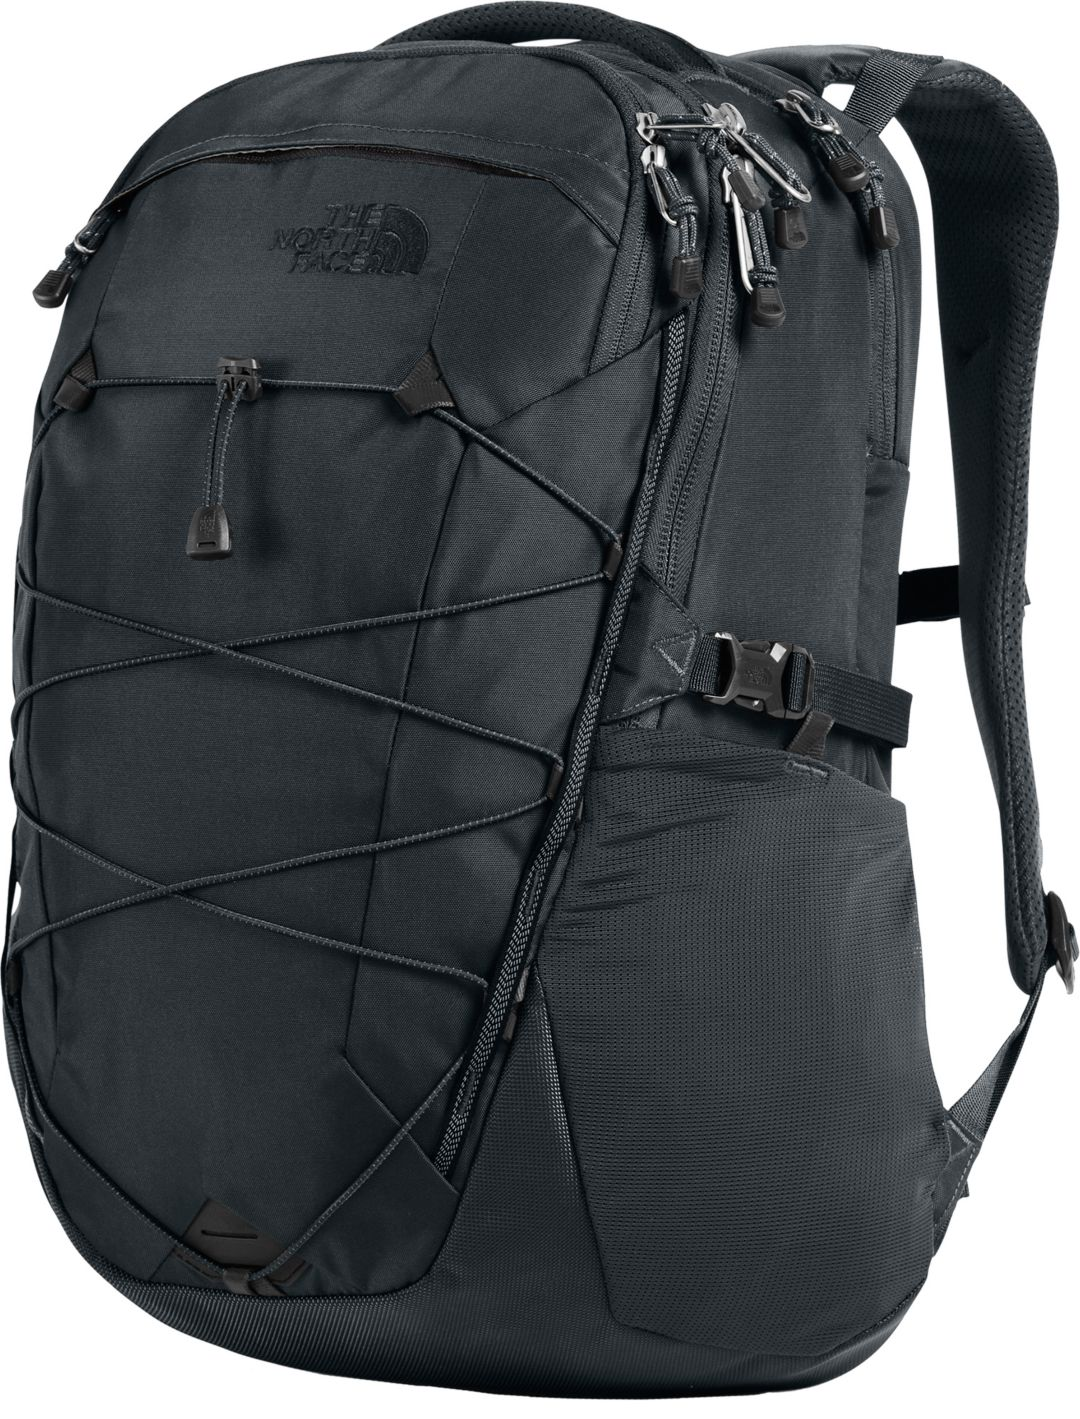 bc45034d7 The North Face Men's Borealis 18 Backpack